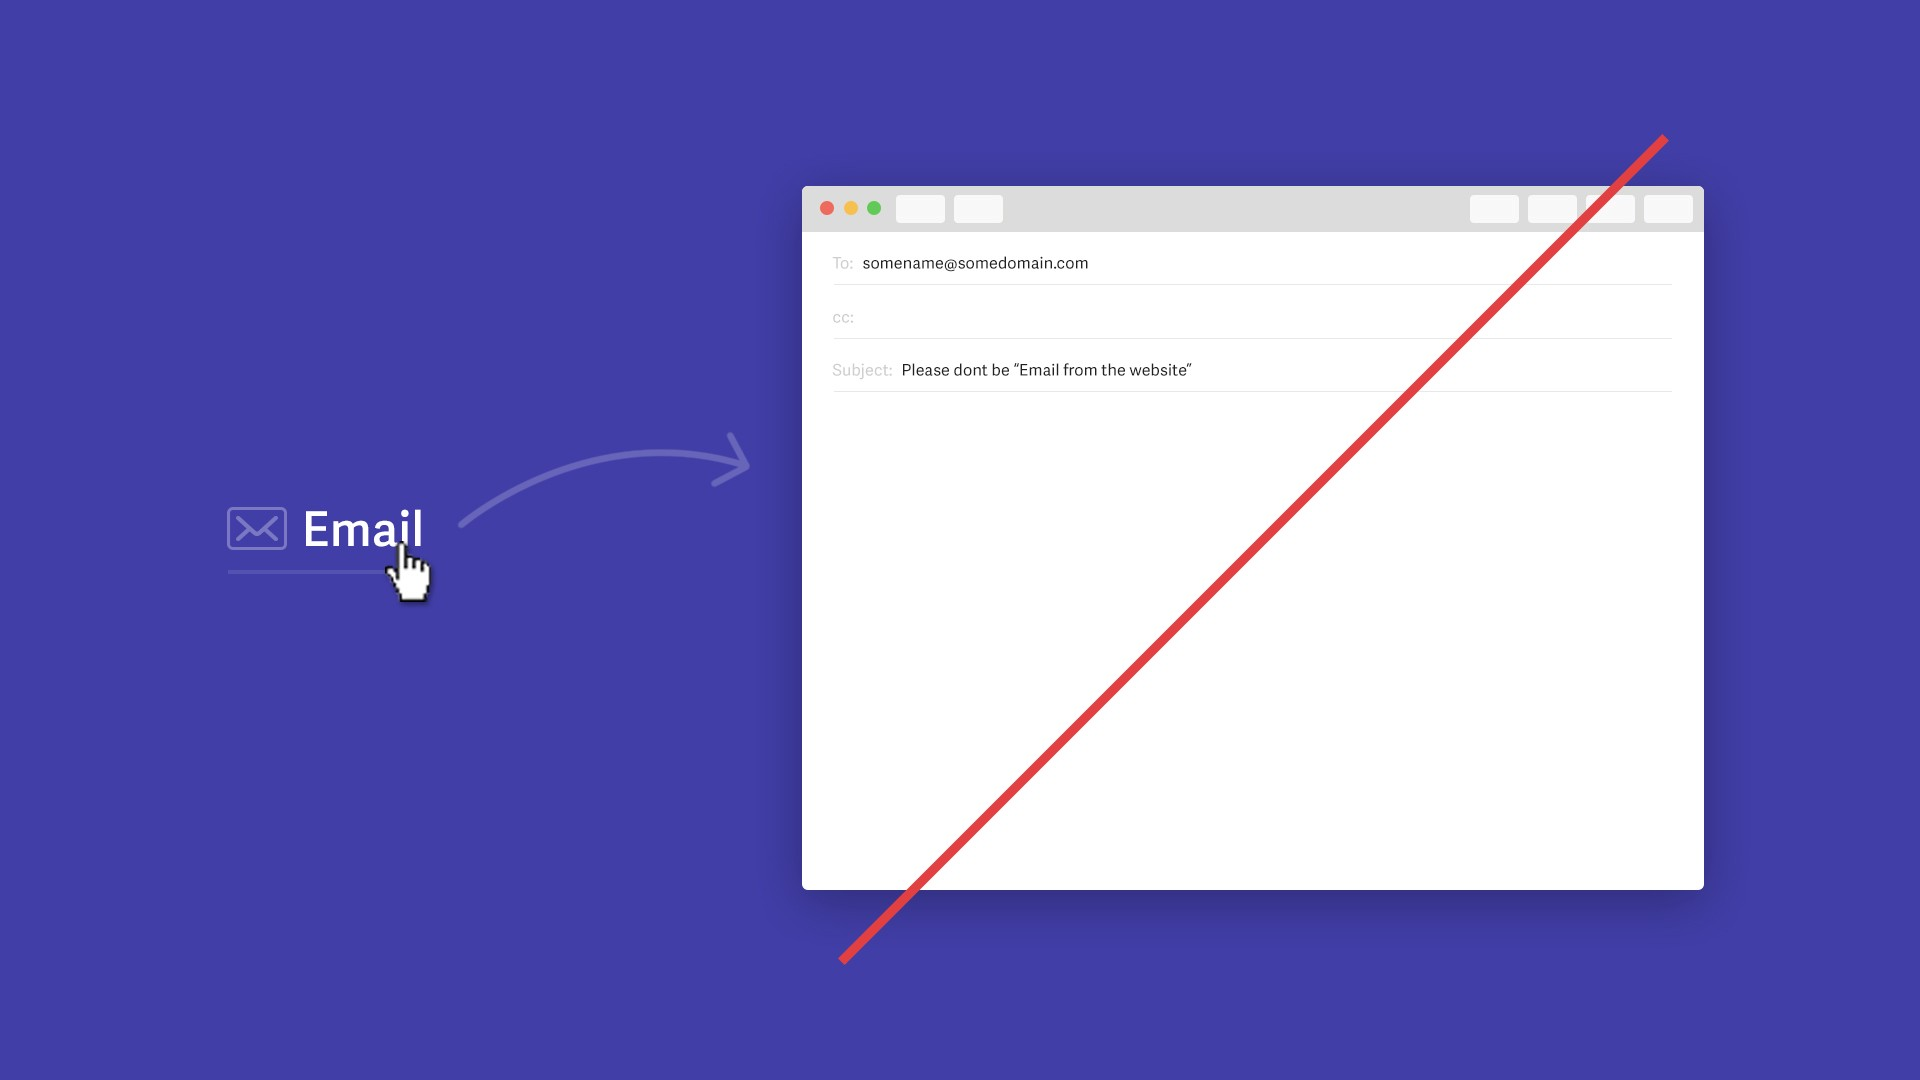 How to develop a chrome extension to stop those annoying